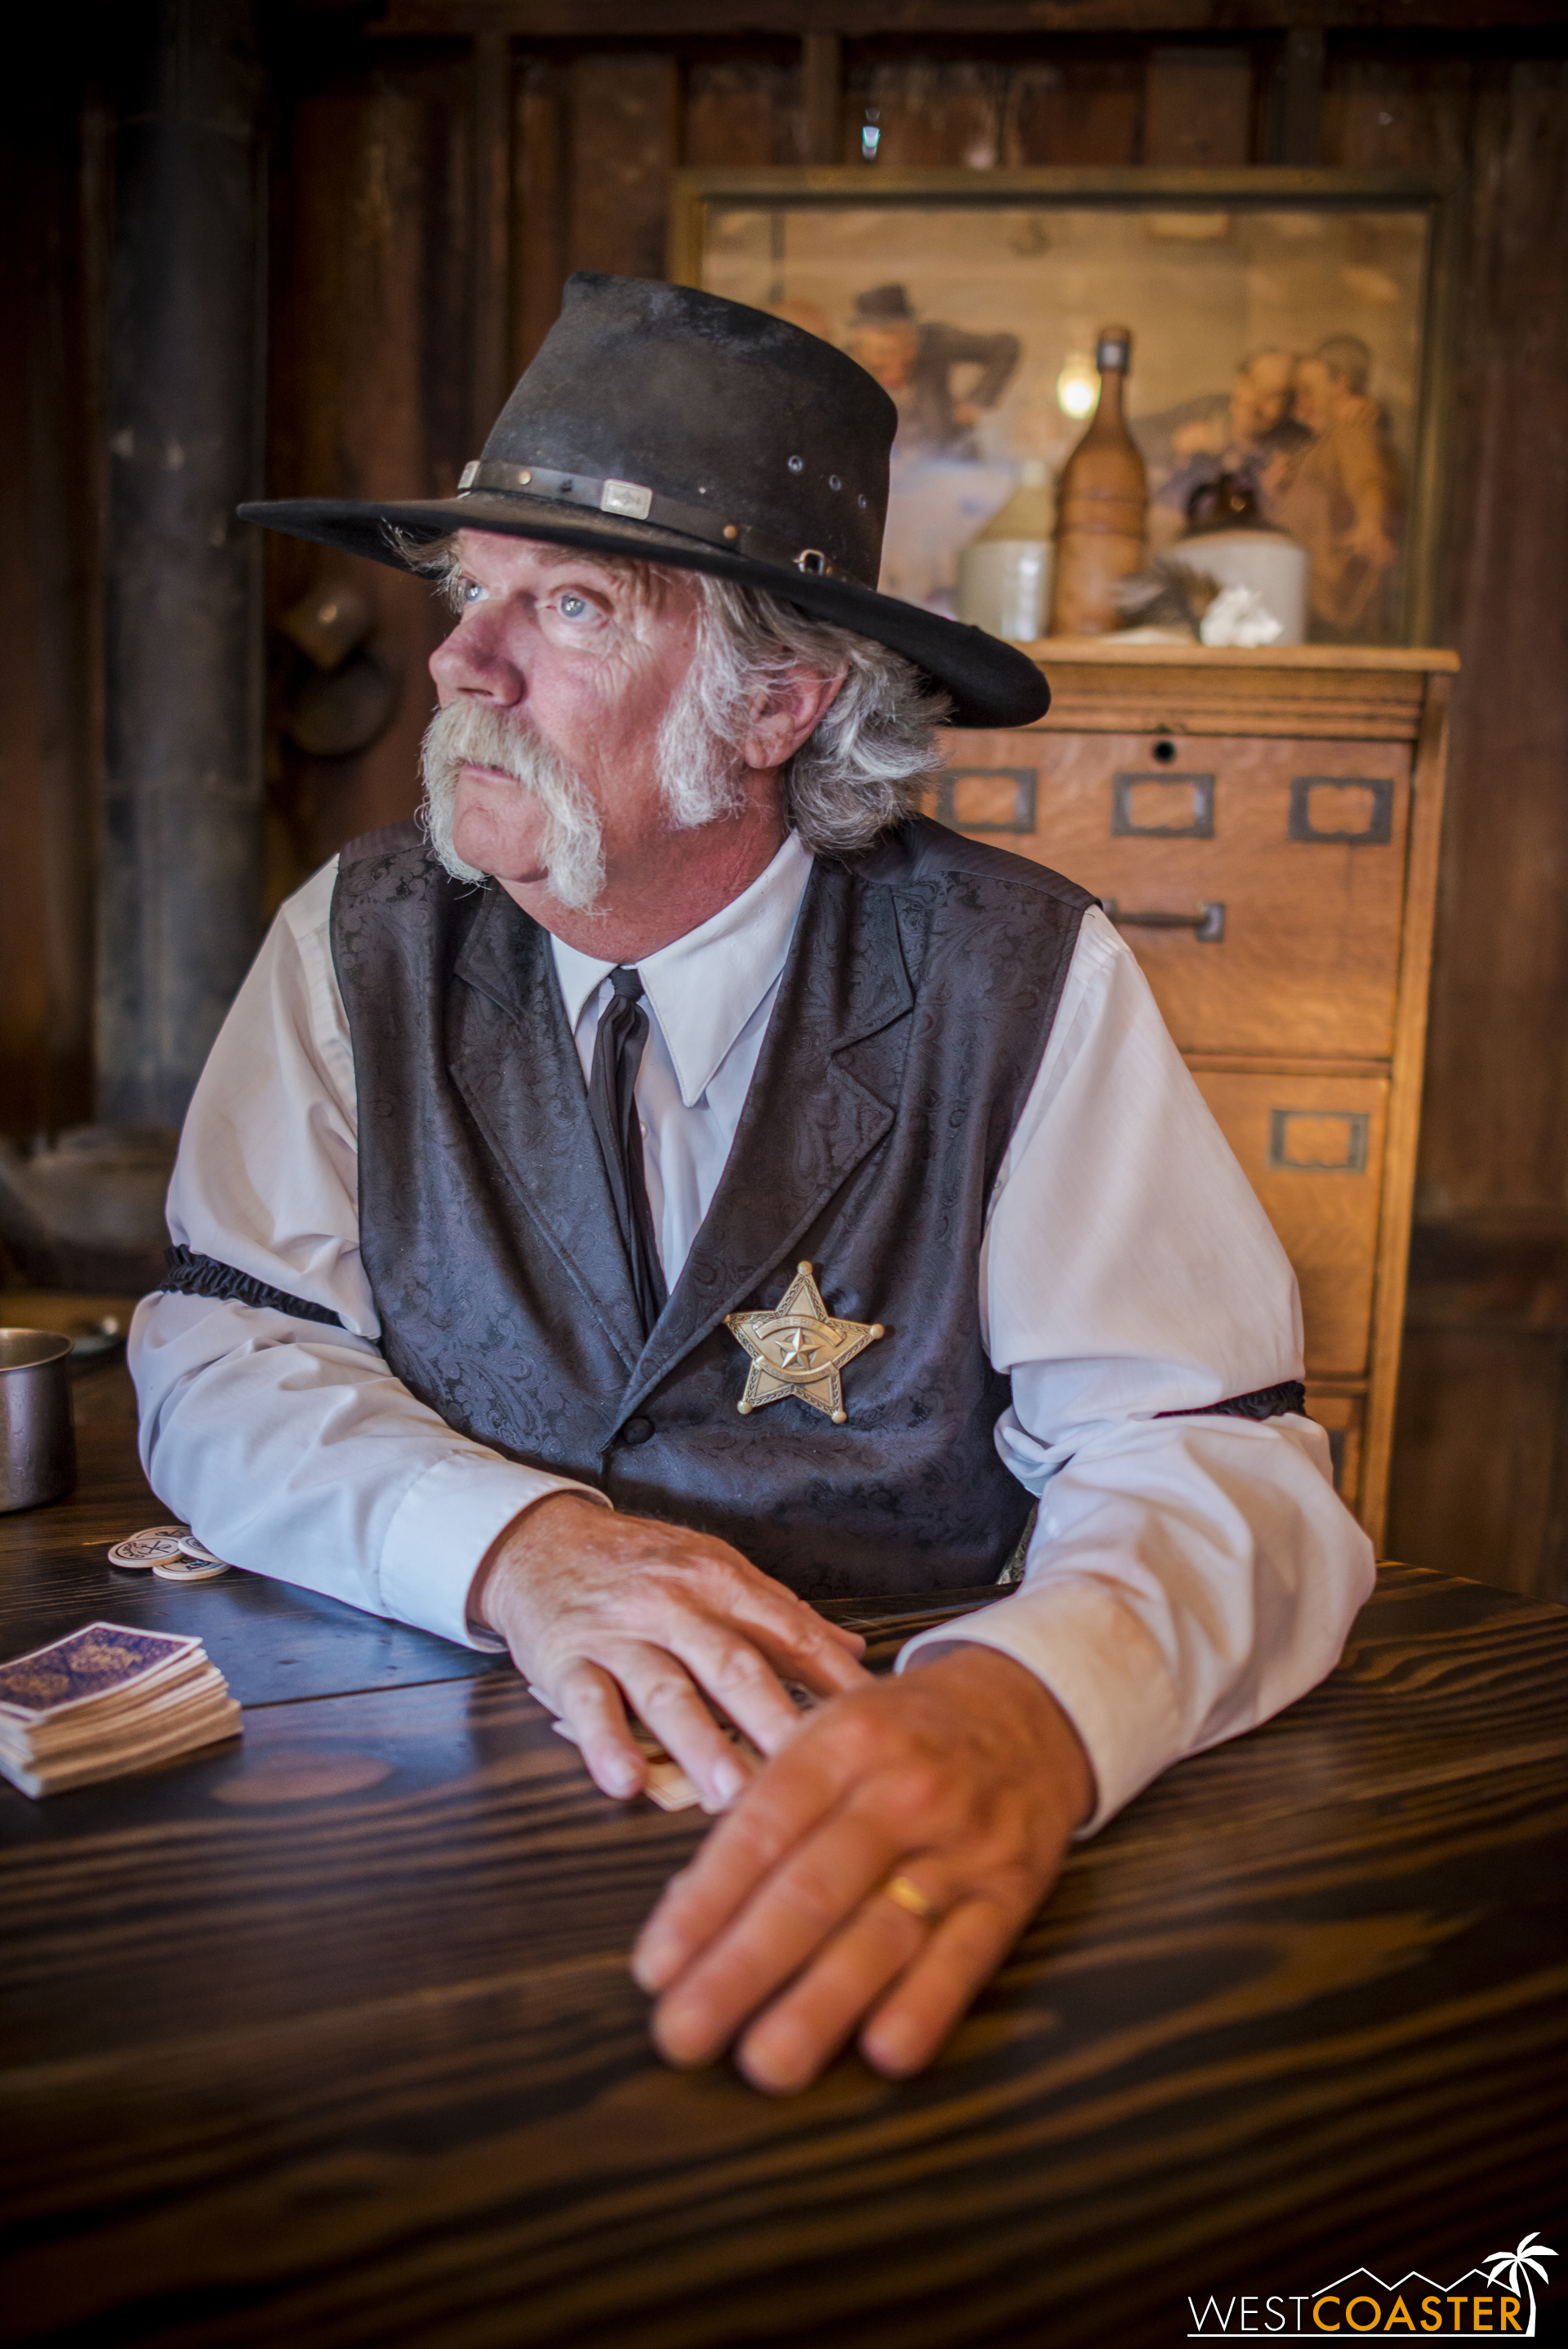 But then some honorary deputies run in and warn Sheriff Wheeler of incoming trouble in the form of the rabble-rousing Mayfields.